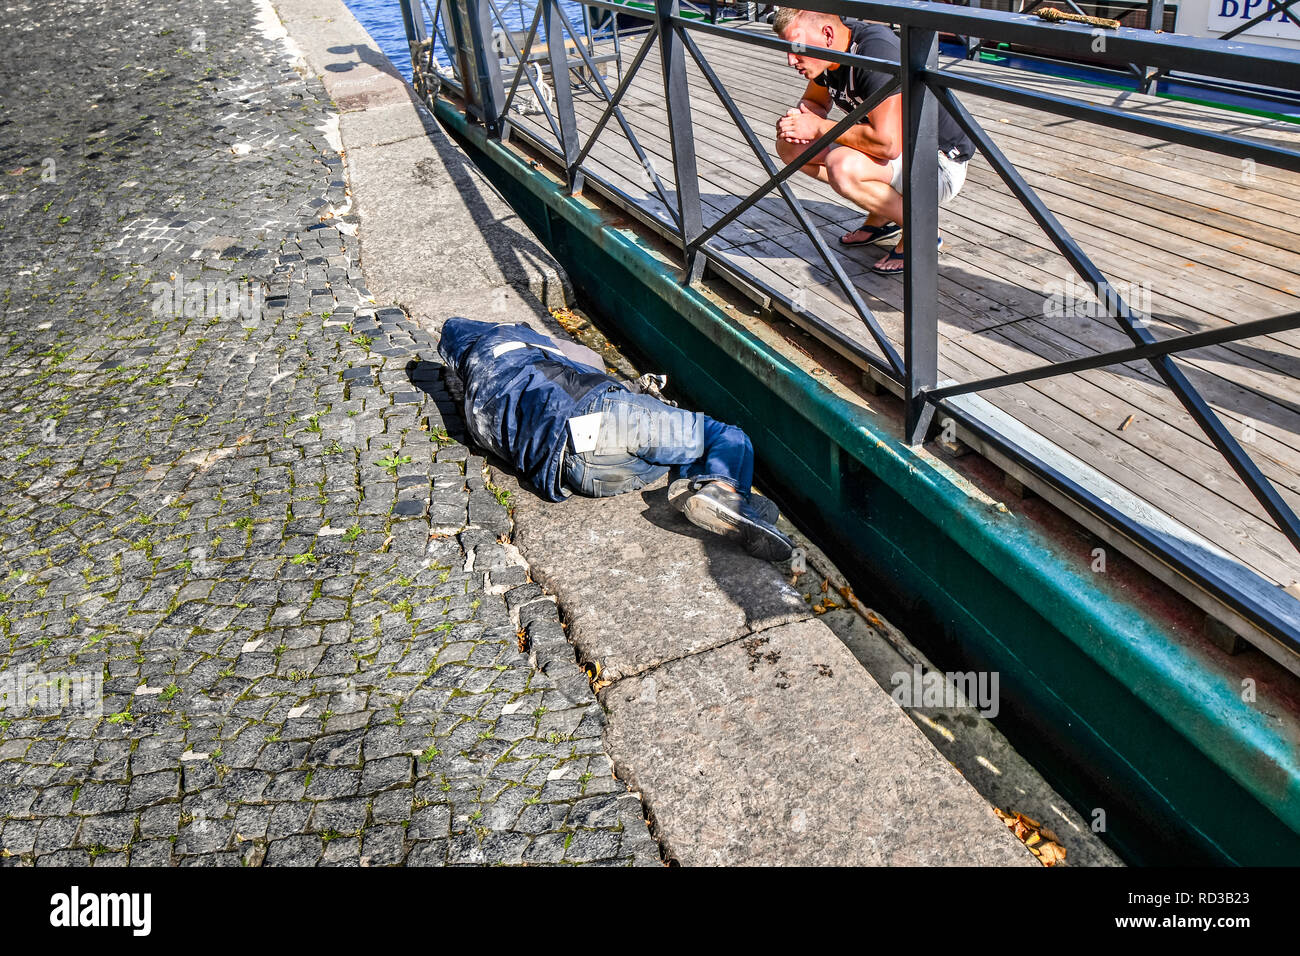 St. Petersburg, Russia - September 11 2018: A homeless man sleeps as another man tries to wake him on a sidewalk near a boat dock on the Neva River. - Stock Image